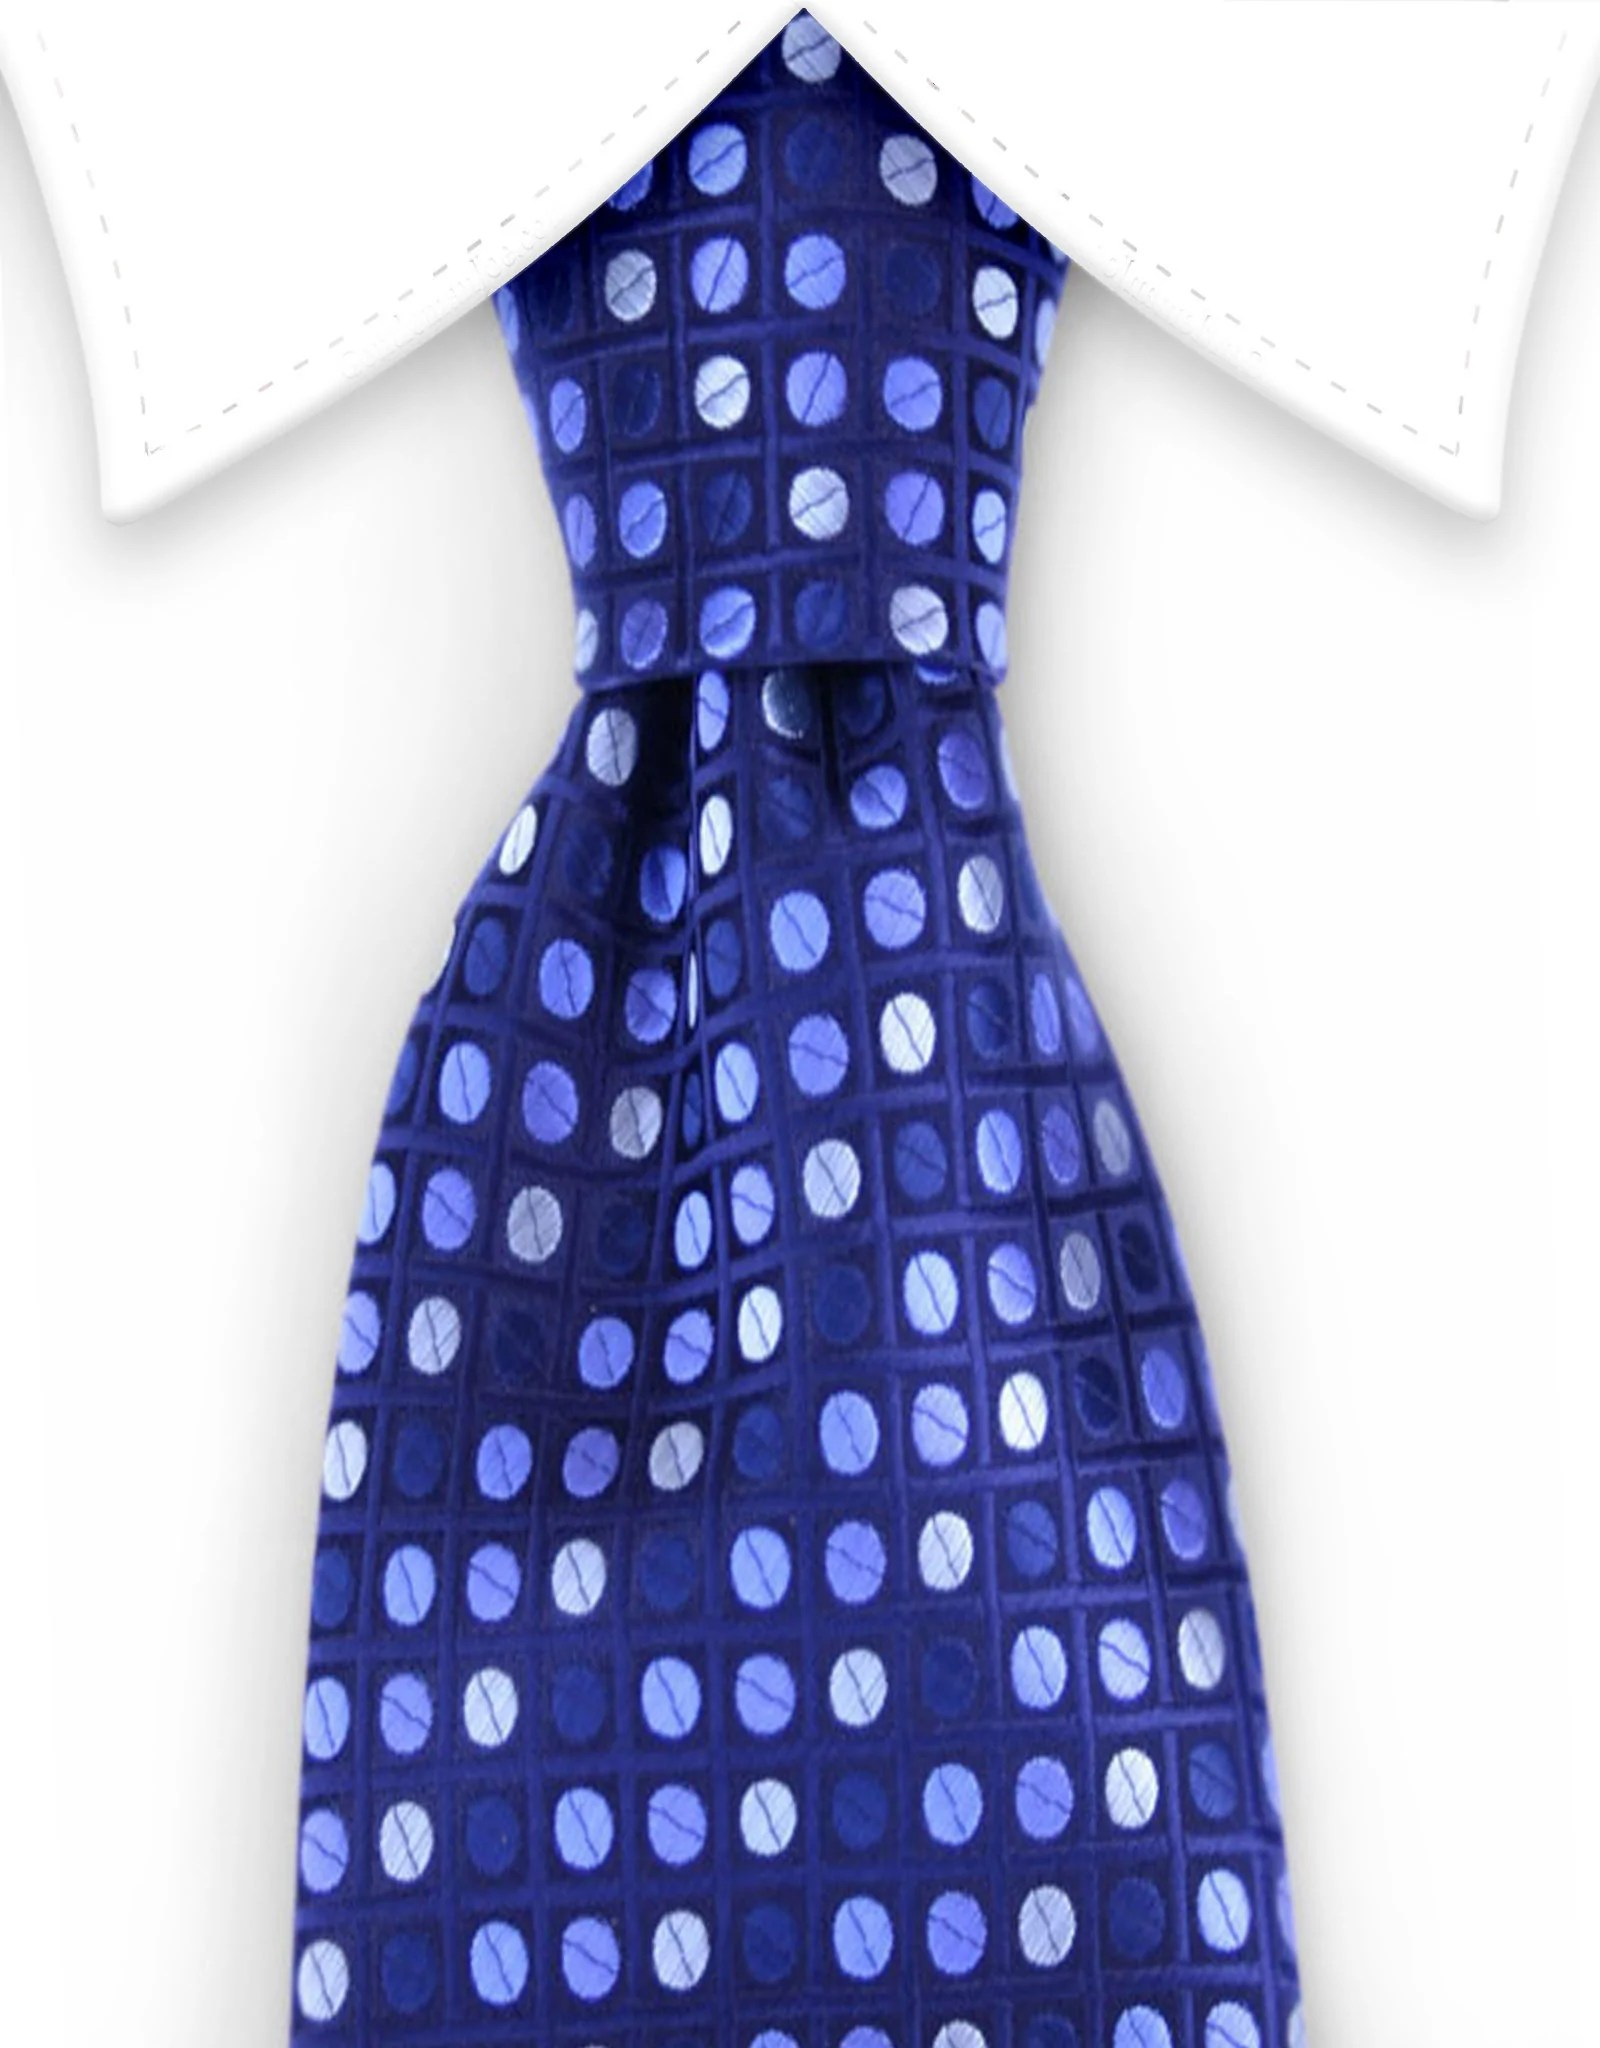 abfc432a8da8 20+ Polka Dot Tie Izod Pictures and Ideas on Weric